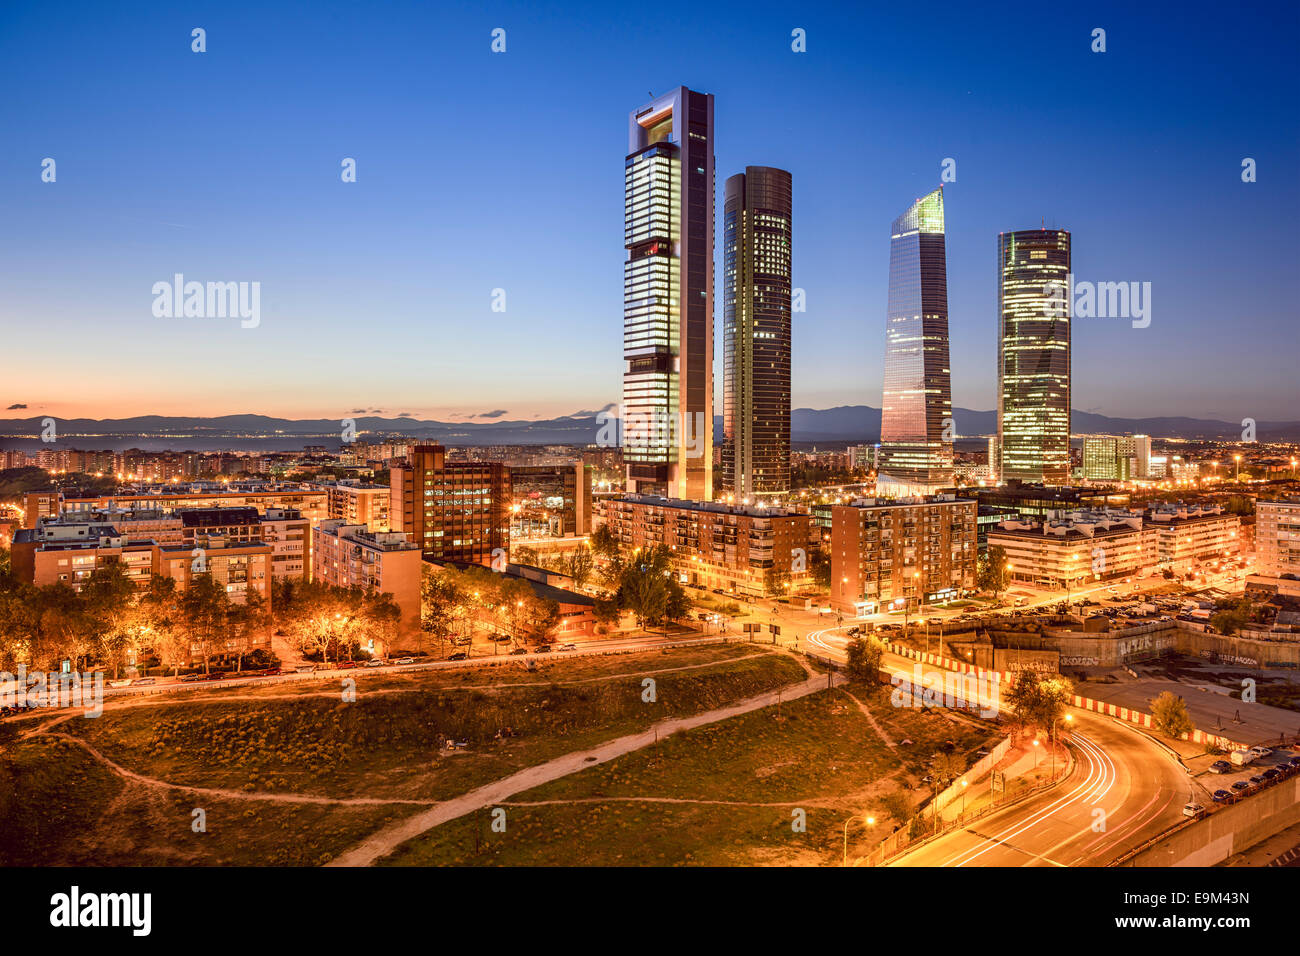 Madrid, Espagne financial district skyline au crépuscule. Photo Stock